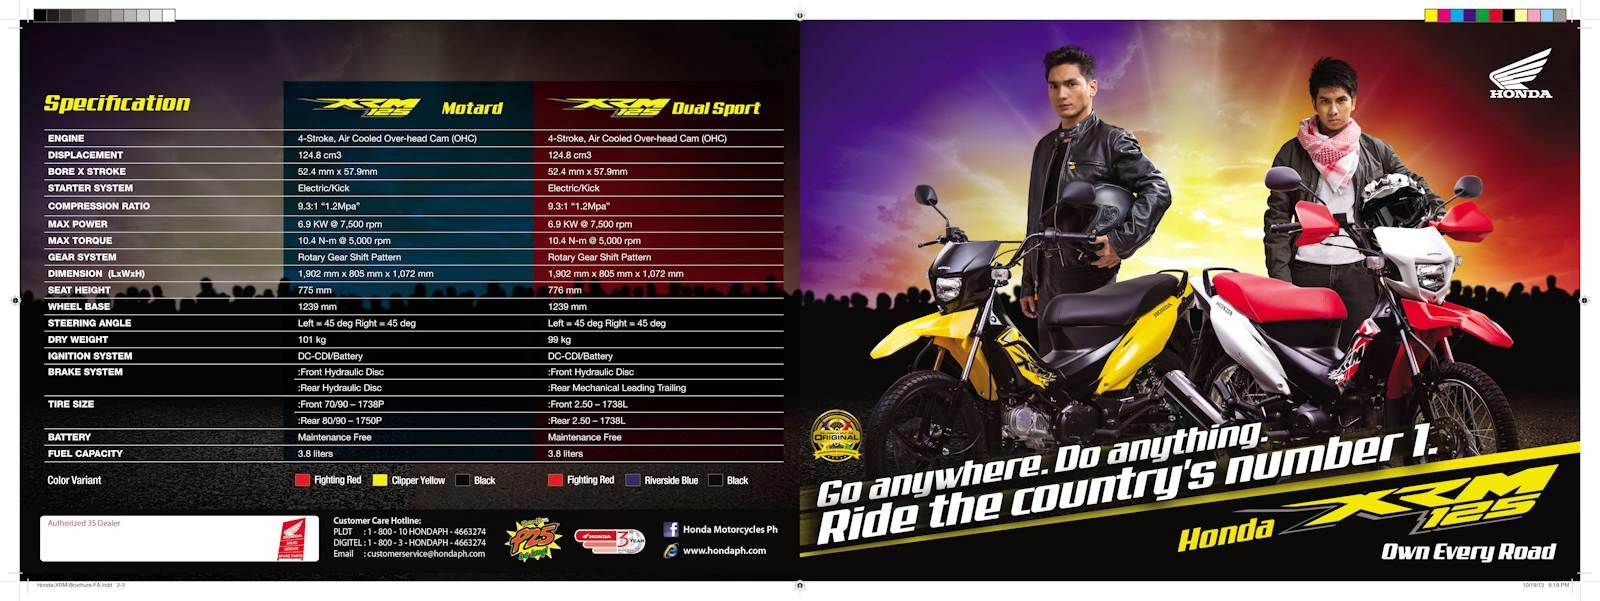 Honda Philippines Launches XRM 125 Motorcycle (w/ Brochure) | Philippine Car News, Car Reviews ...